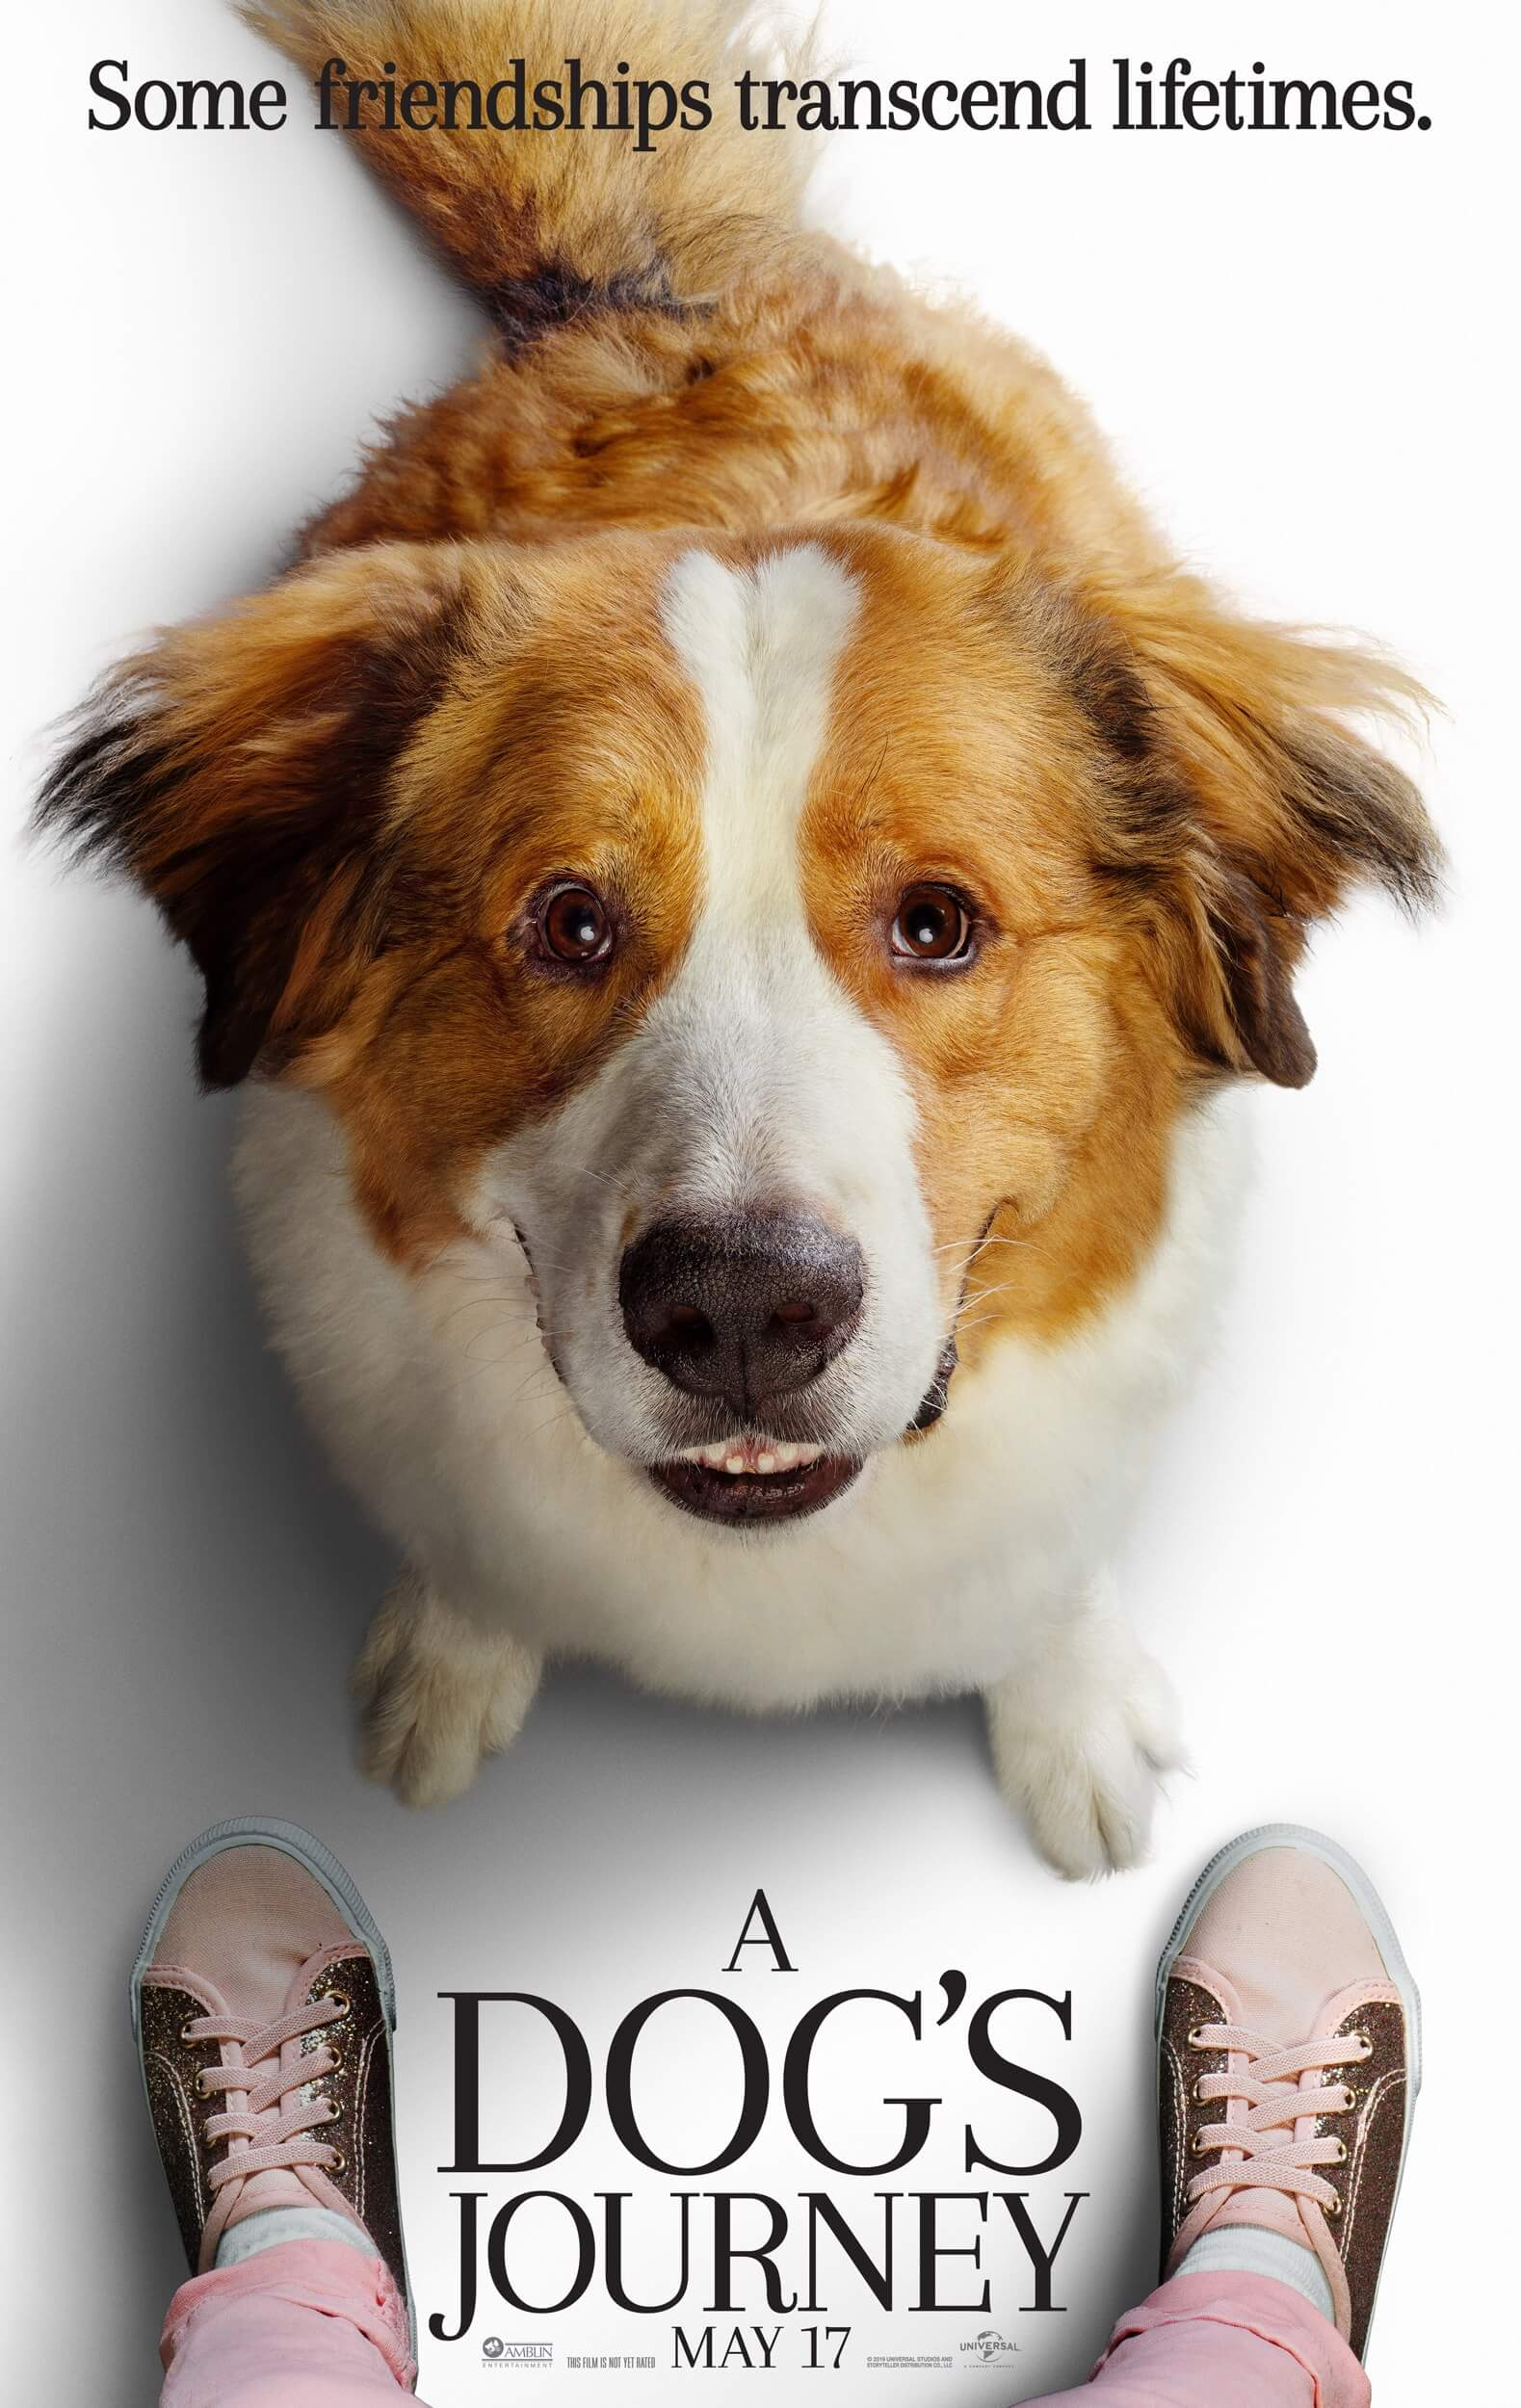 A Dog's Journey - Poster 1